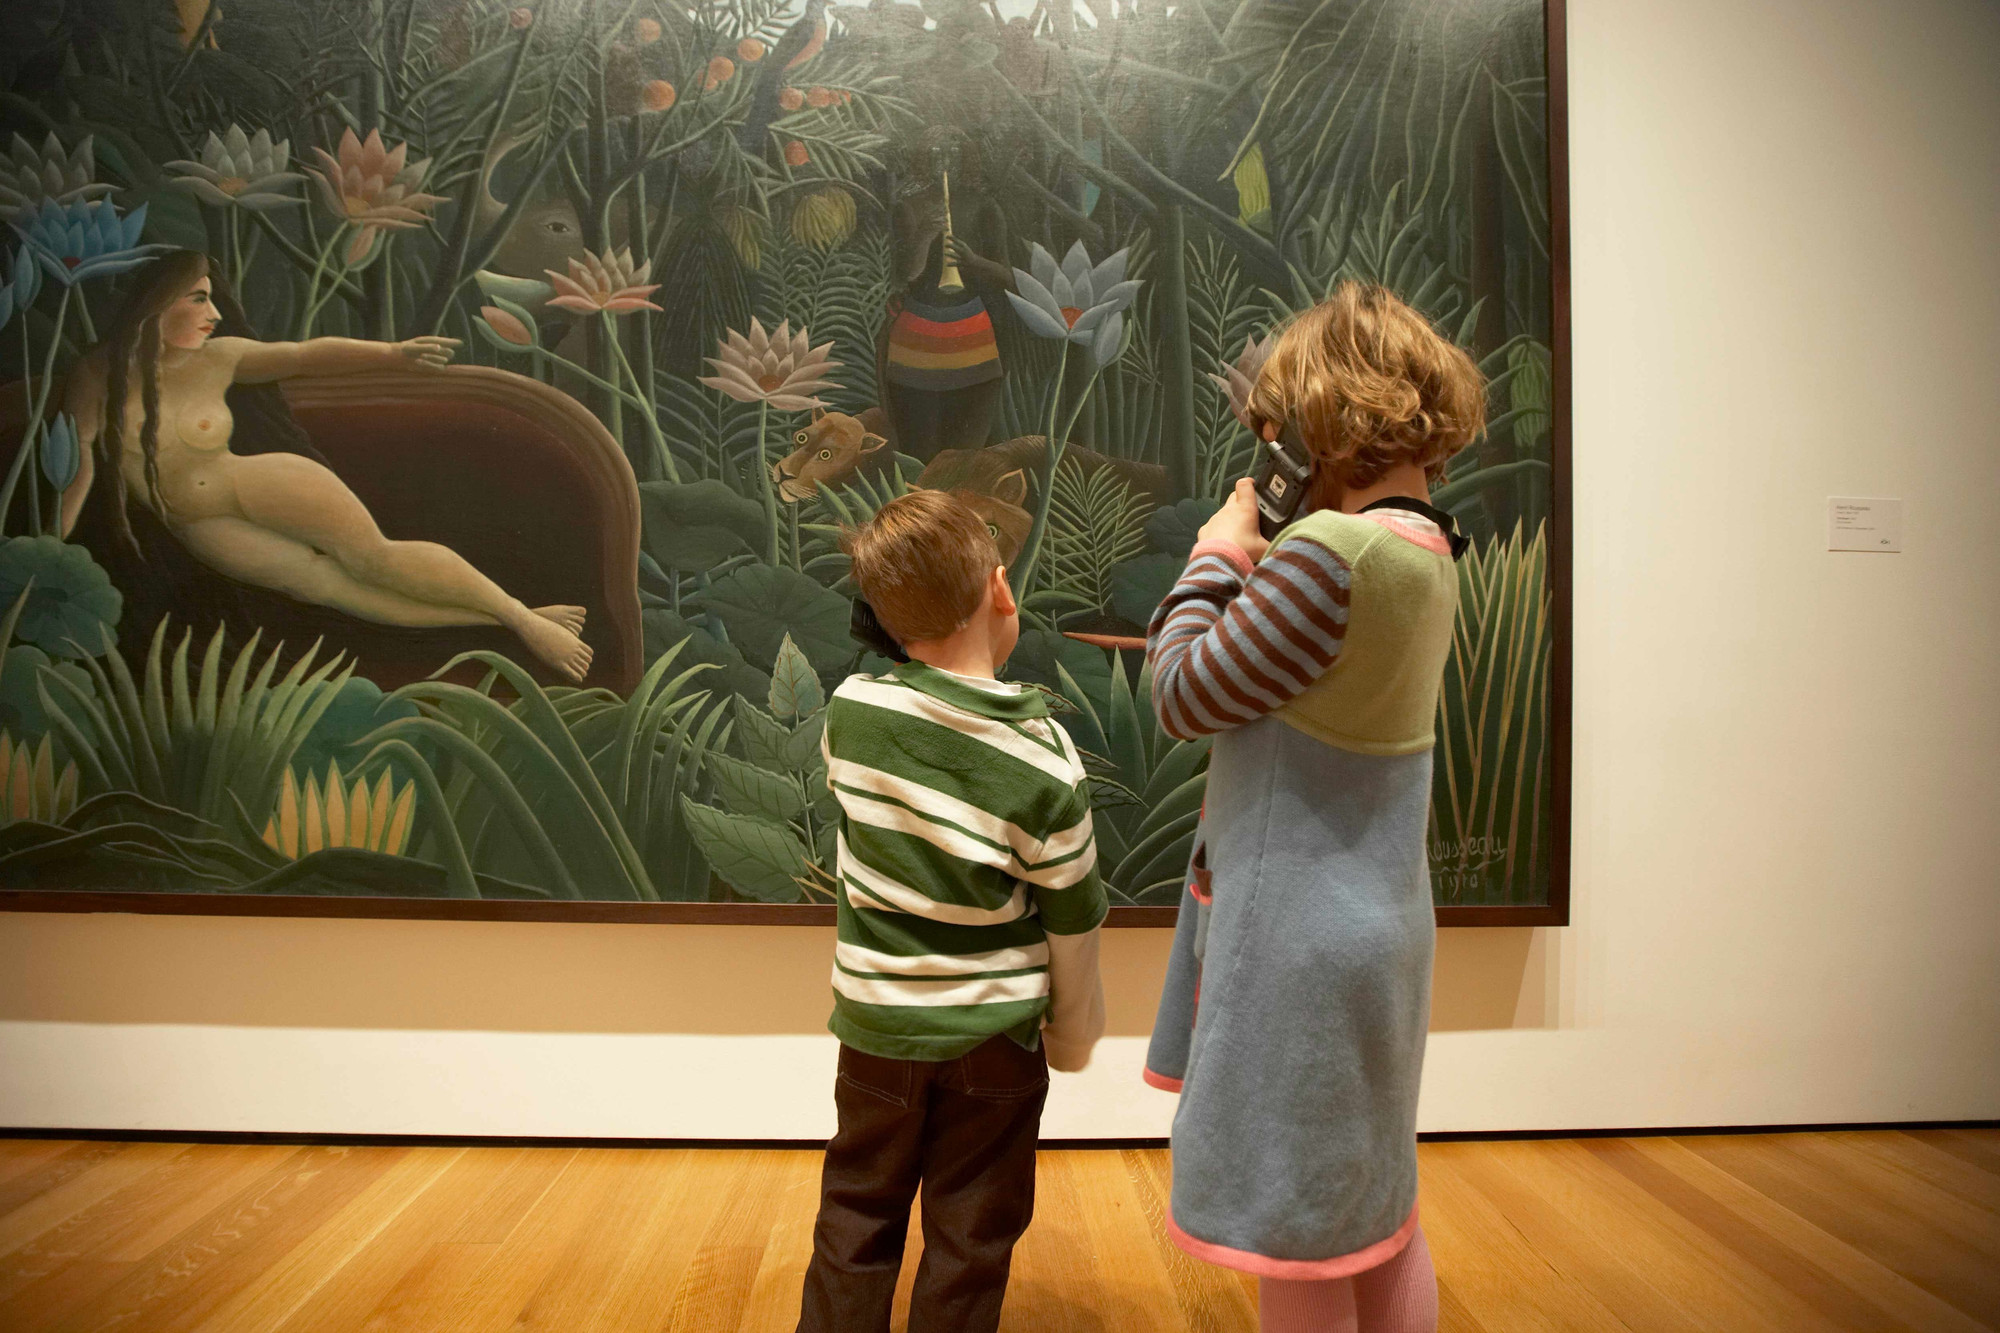 Children listening to MoMA Audio for Henri Rousseau's The Dream. 1910. Oil on canvas. Gift of Nelson A. Rockefeller. © Museum of Modern Art, N.Y. Photo: Jason Brownrigg